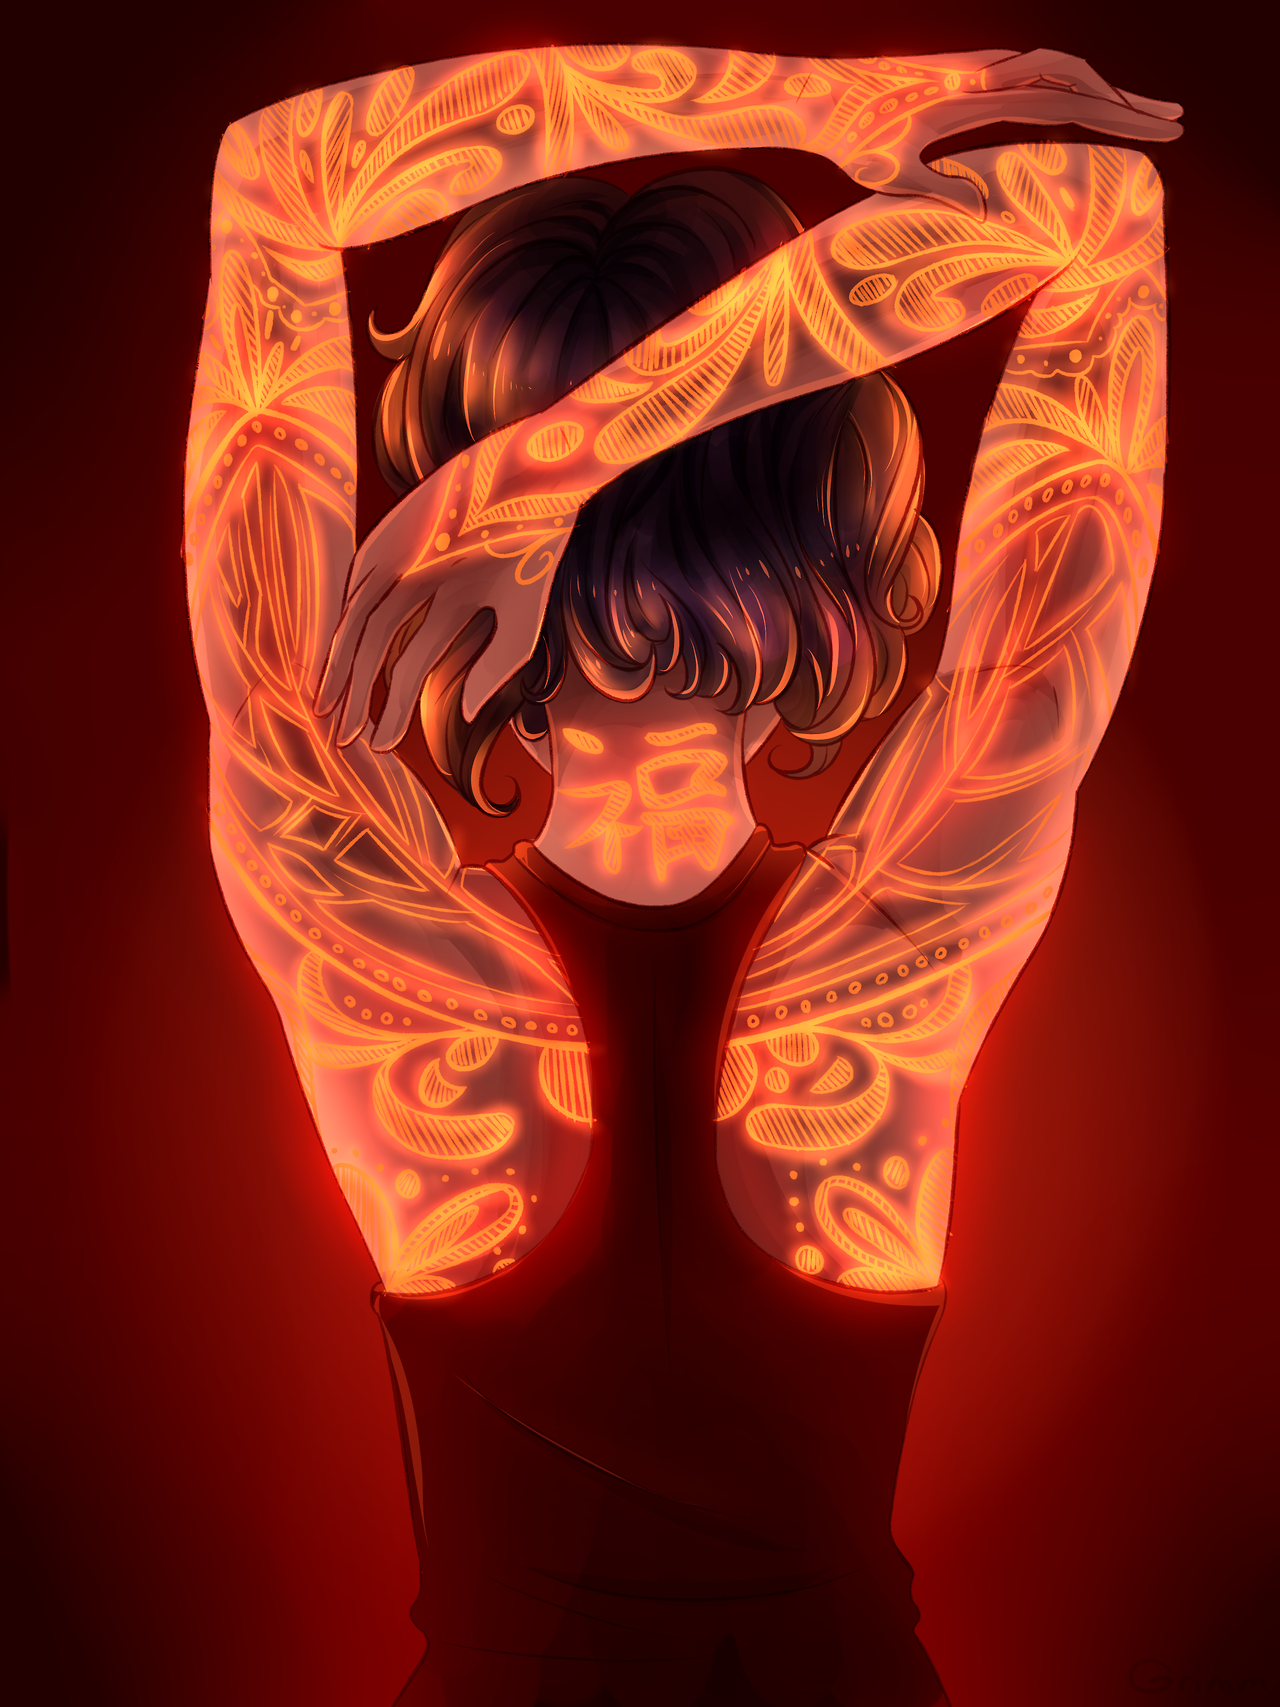 Here have some glowy tattoos that deprived me of six precious hours of sleep Speedpaint: (x)